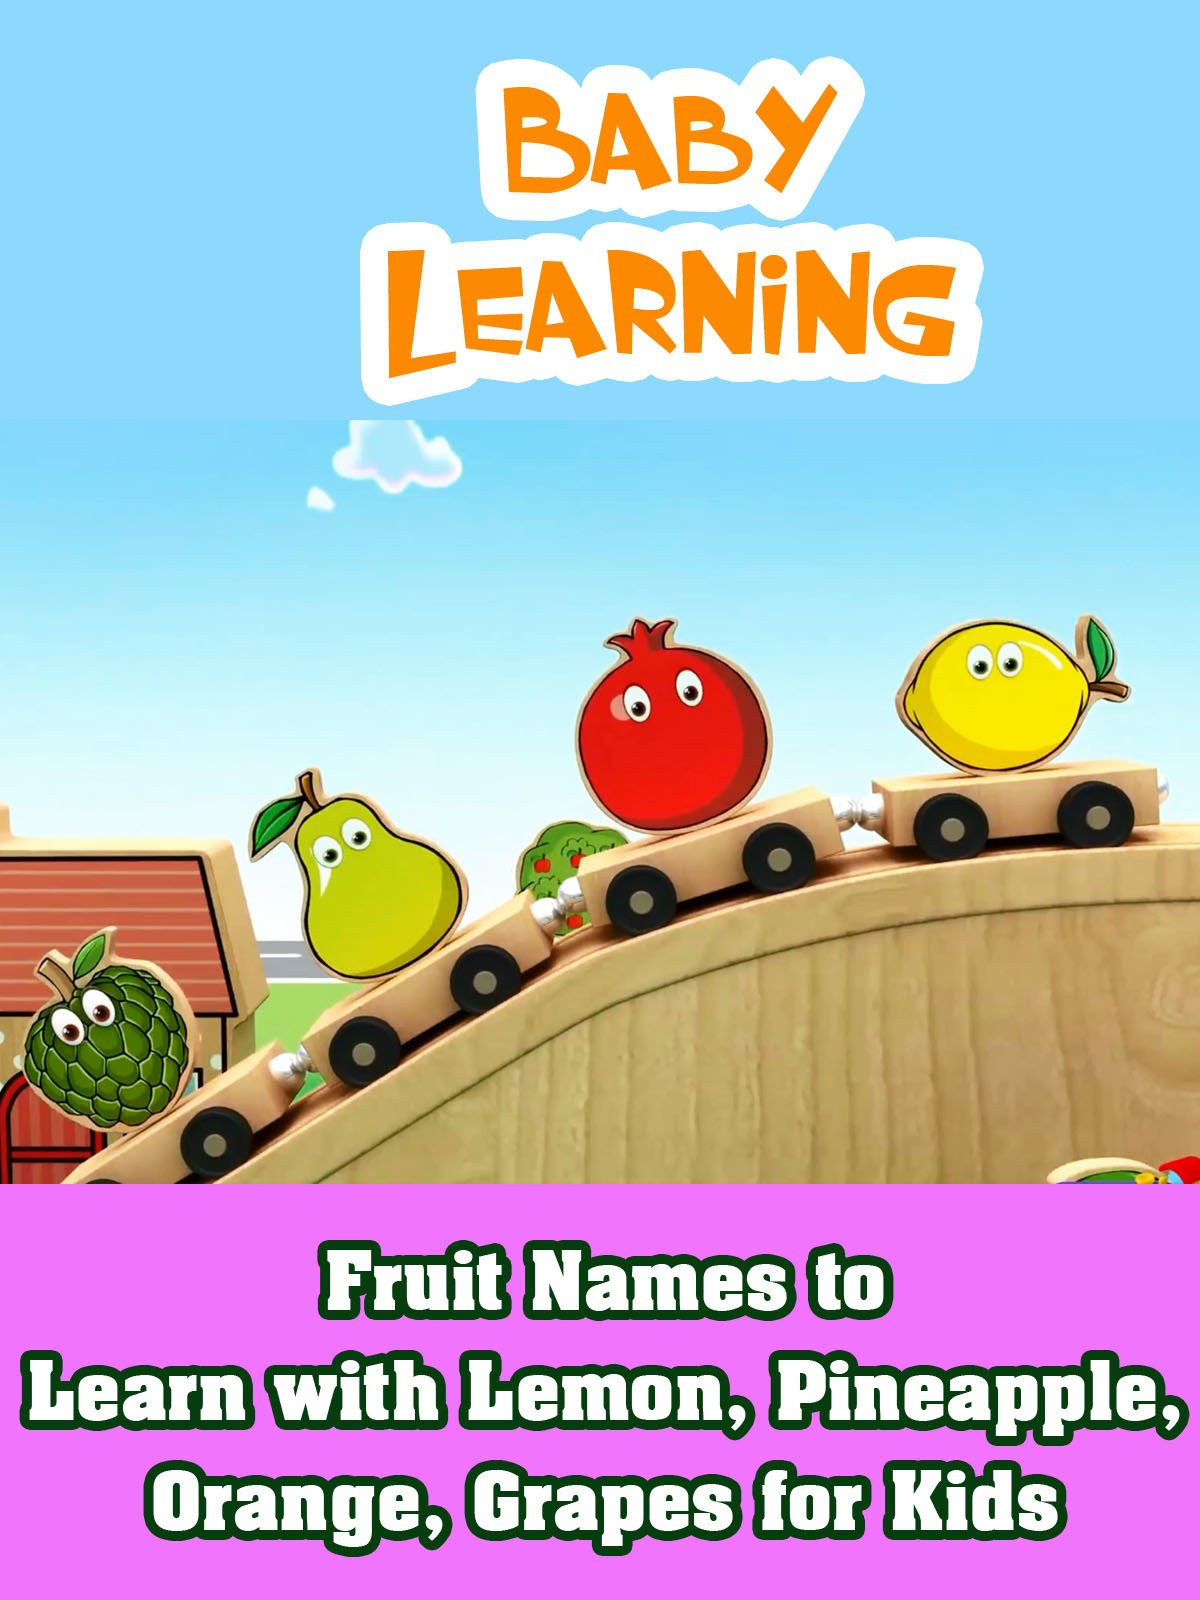 Fruit Names to Learn with Lemon, Pineapple, Orange, Grapes for Kids